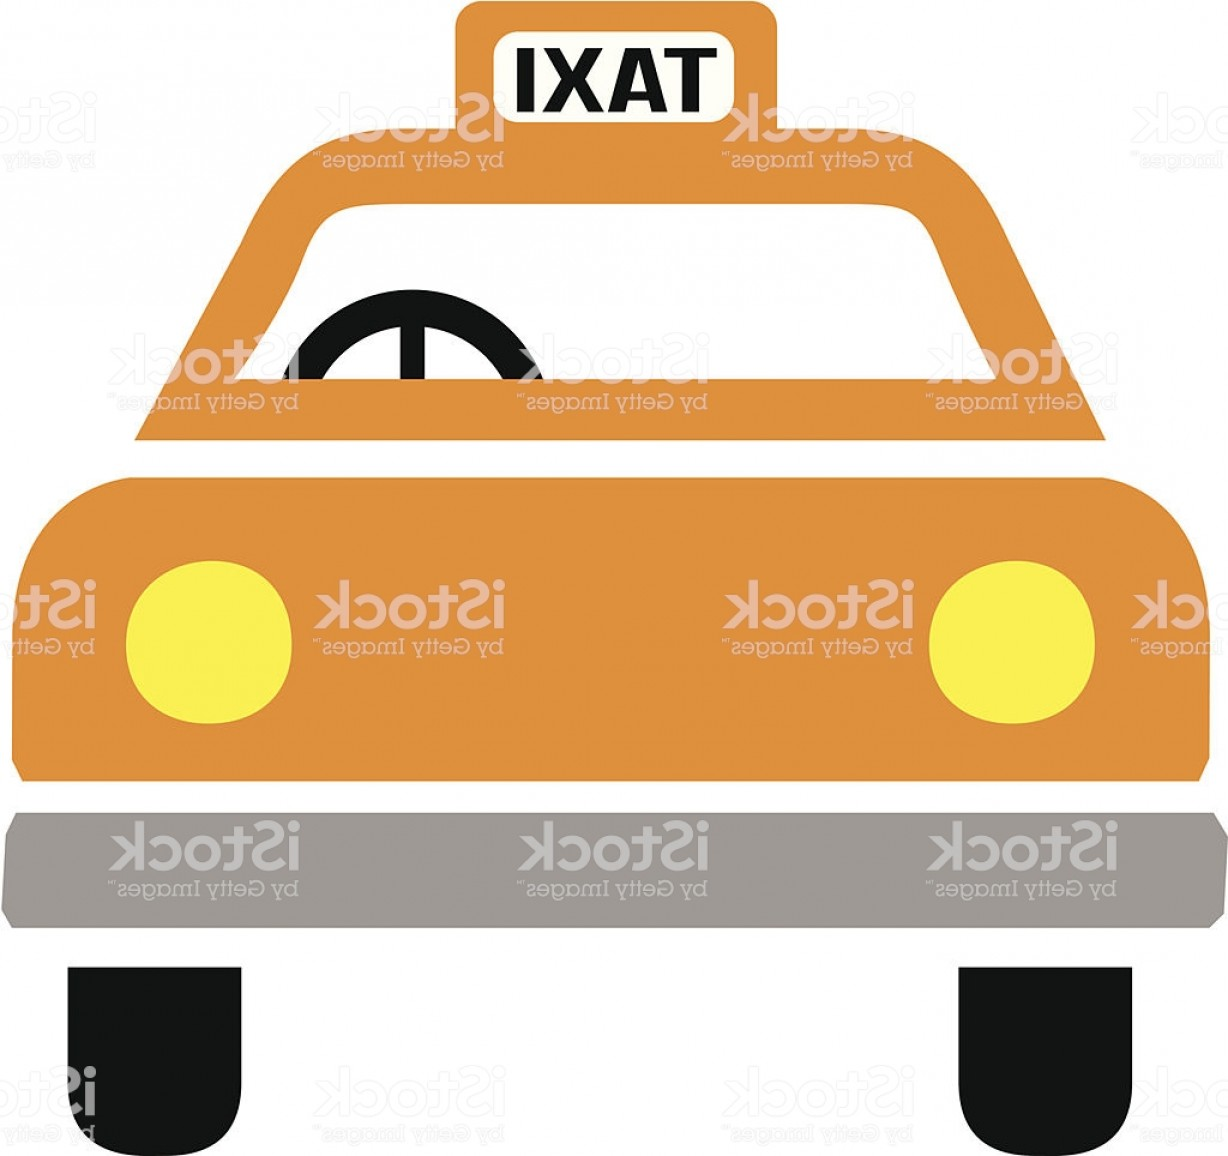 New York Taxi Cab Vector: New York Taxi Cab Icon Front View Gm